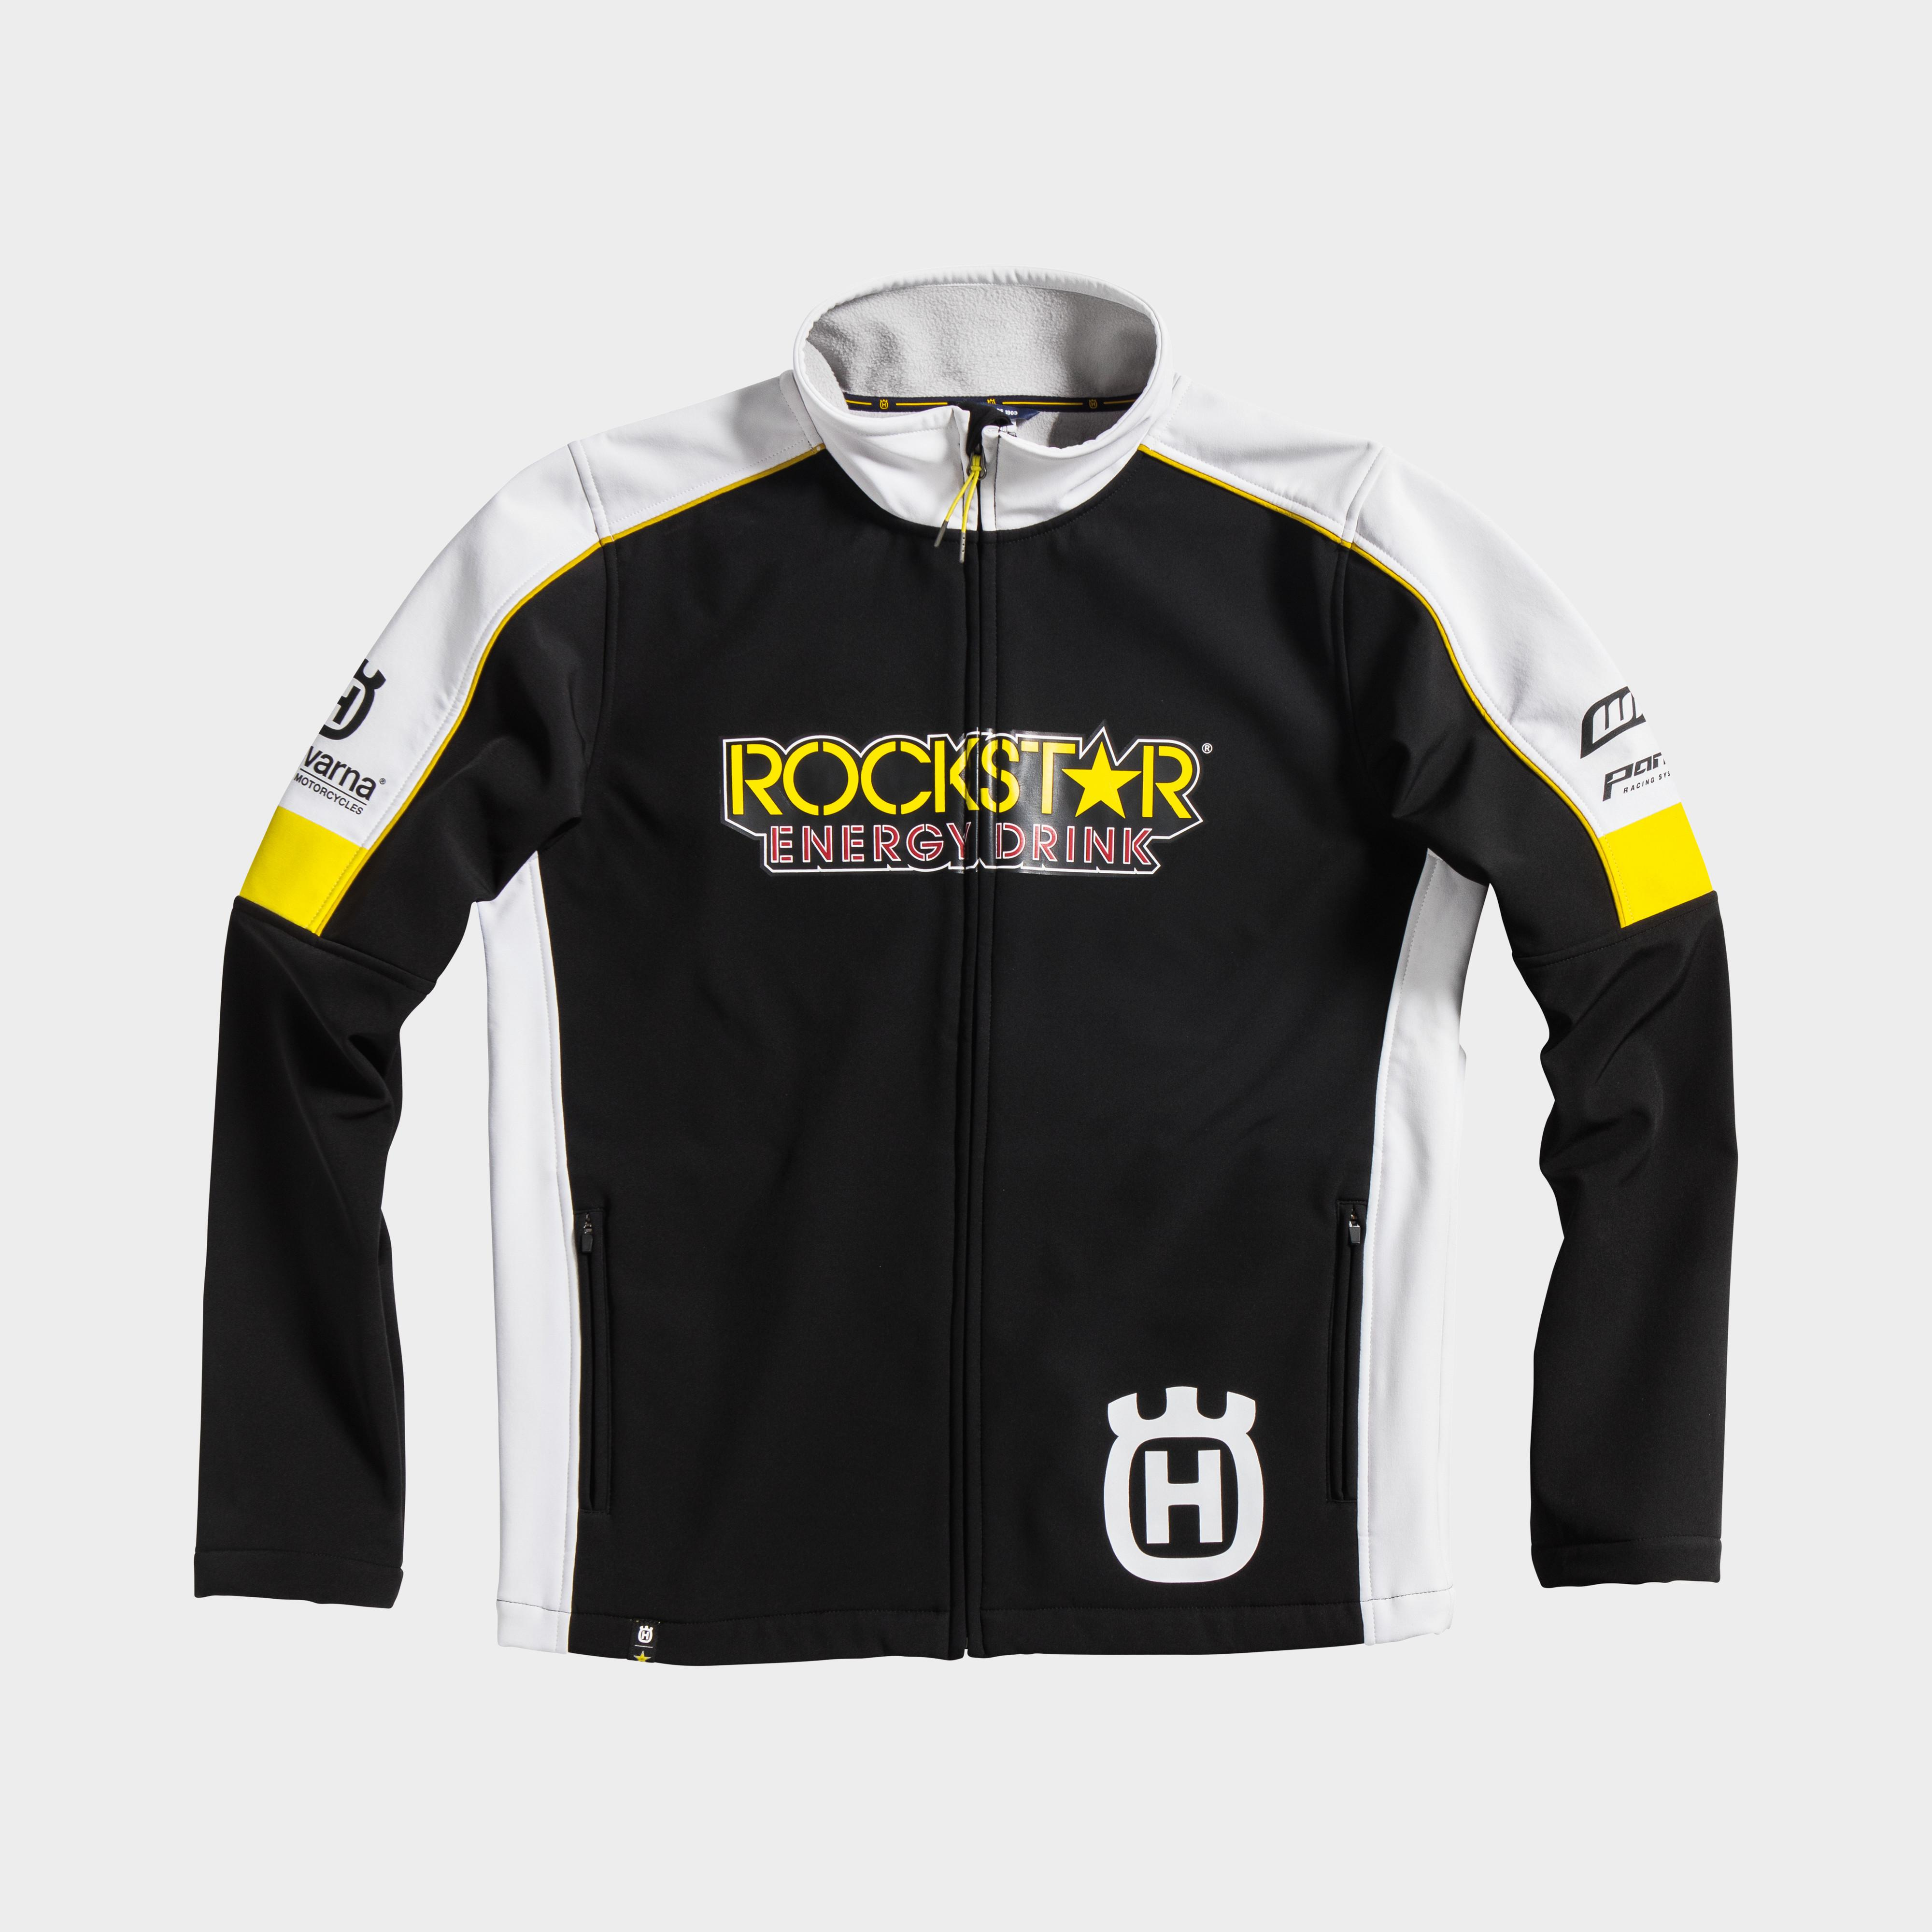 rockstar energy husqvarna factory racing replica collection team jacket